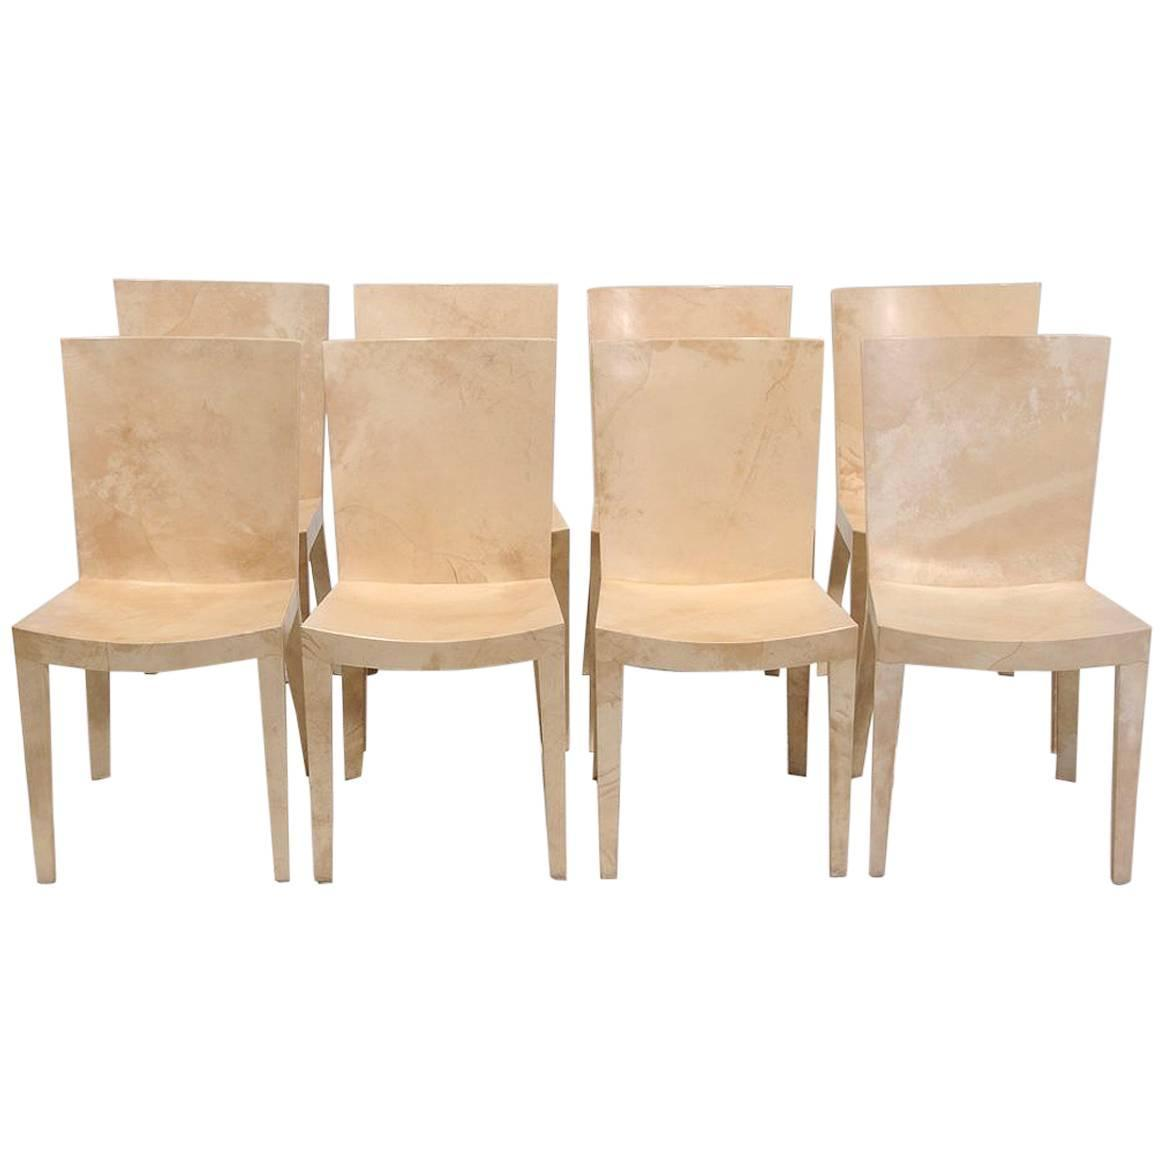 Due North Chairs Set Of Jmf Lacquered Goatskin Chairs By Karl Springer At